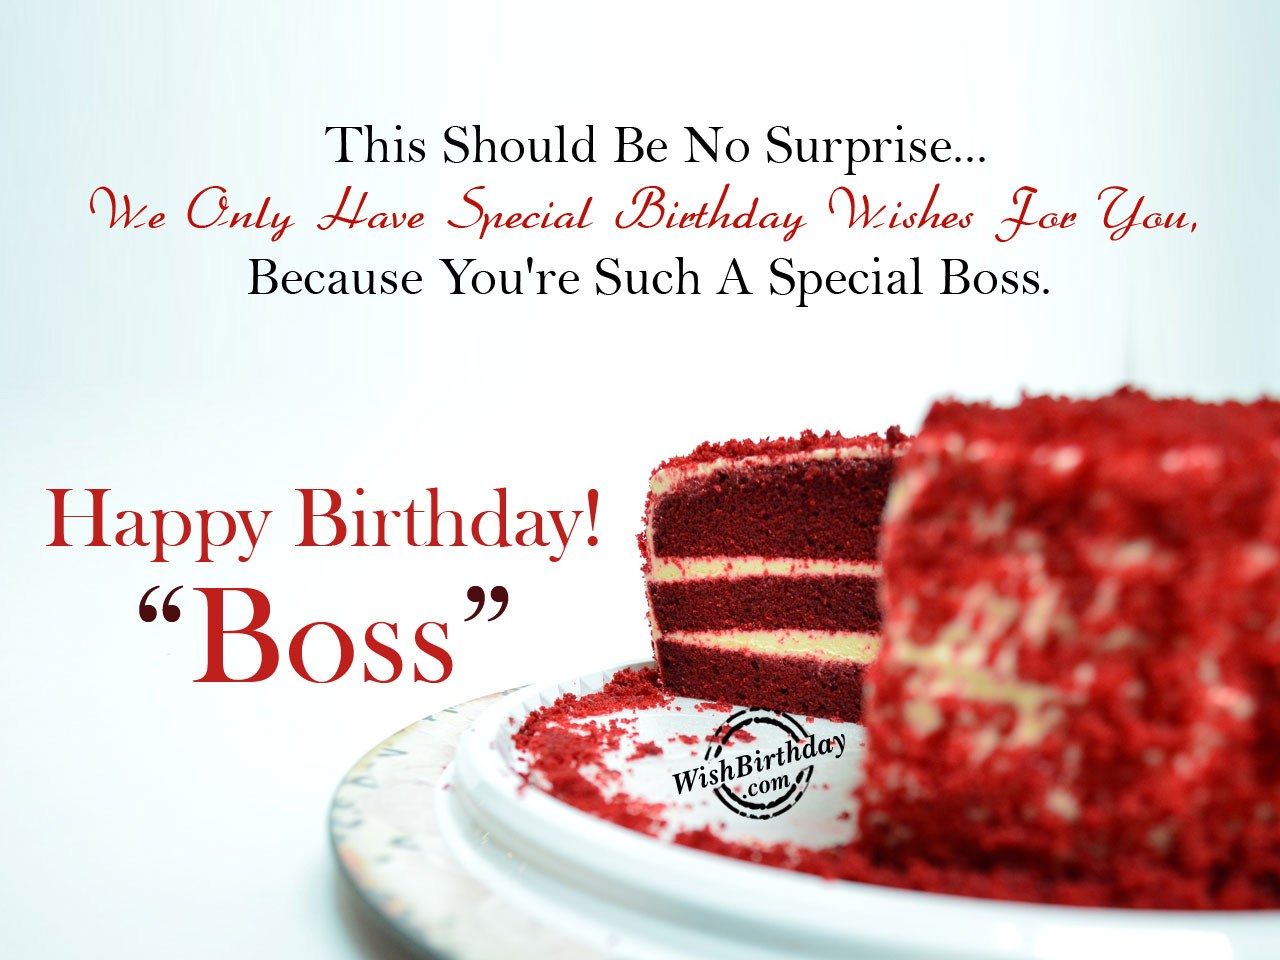 Birthday wishes for boss birthday images pictures happy birthday boss you are such a special boss kristyandbryce Gallery